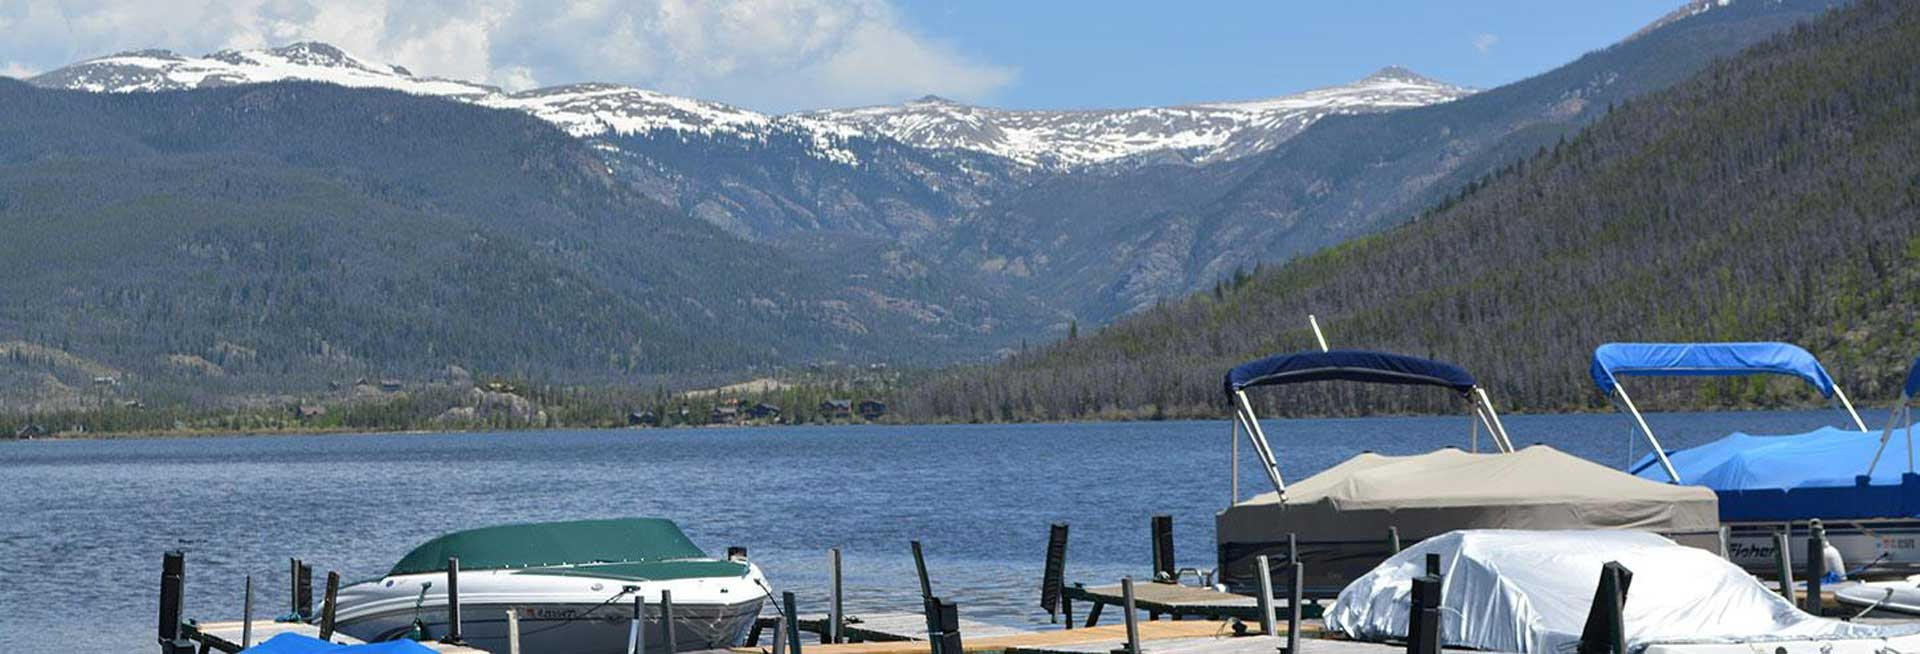 Motorboat dock being overlooked by Rocky Mountains.